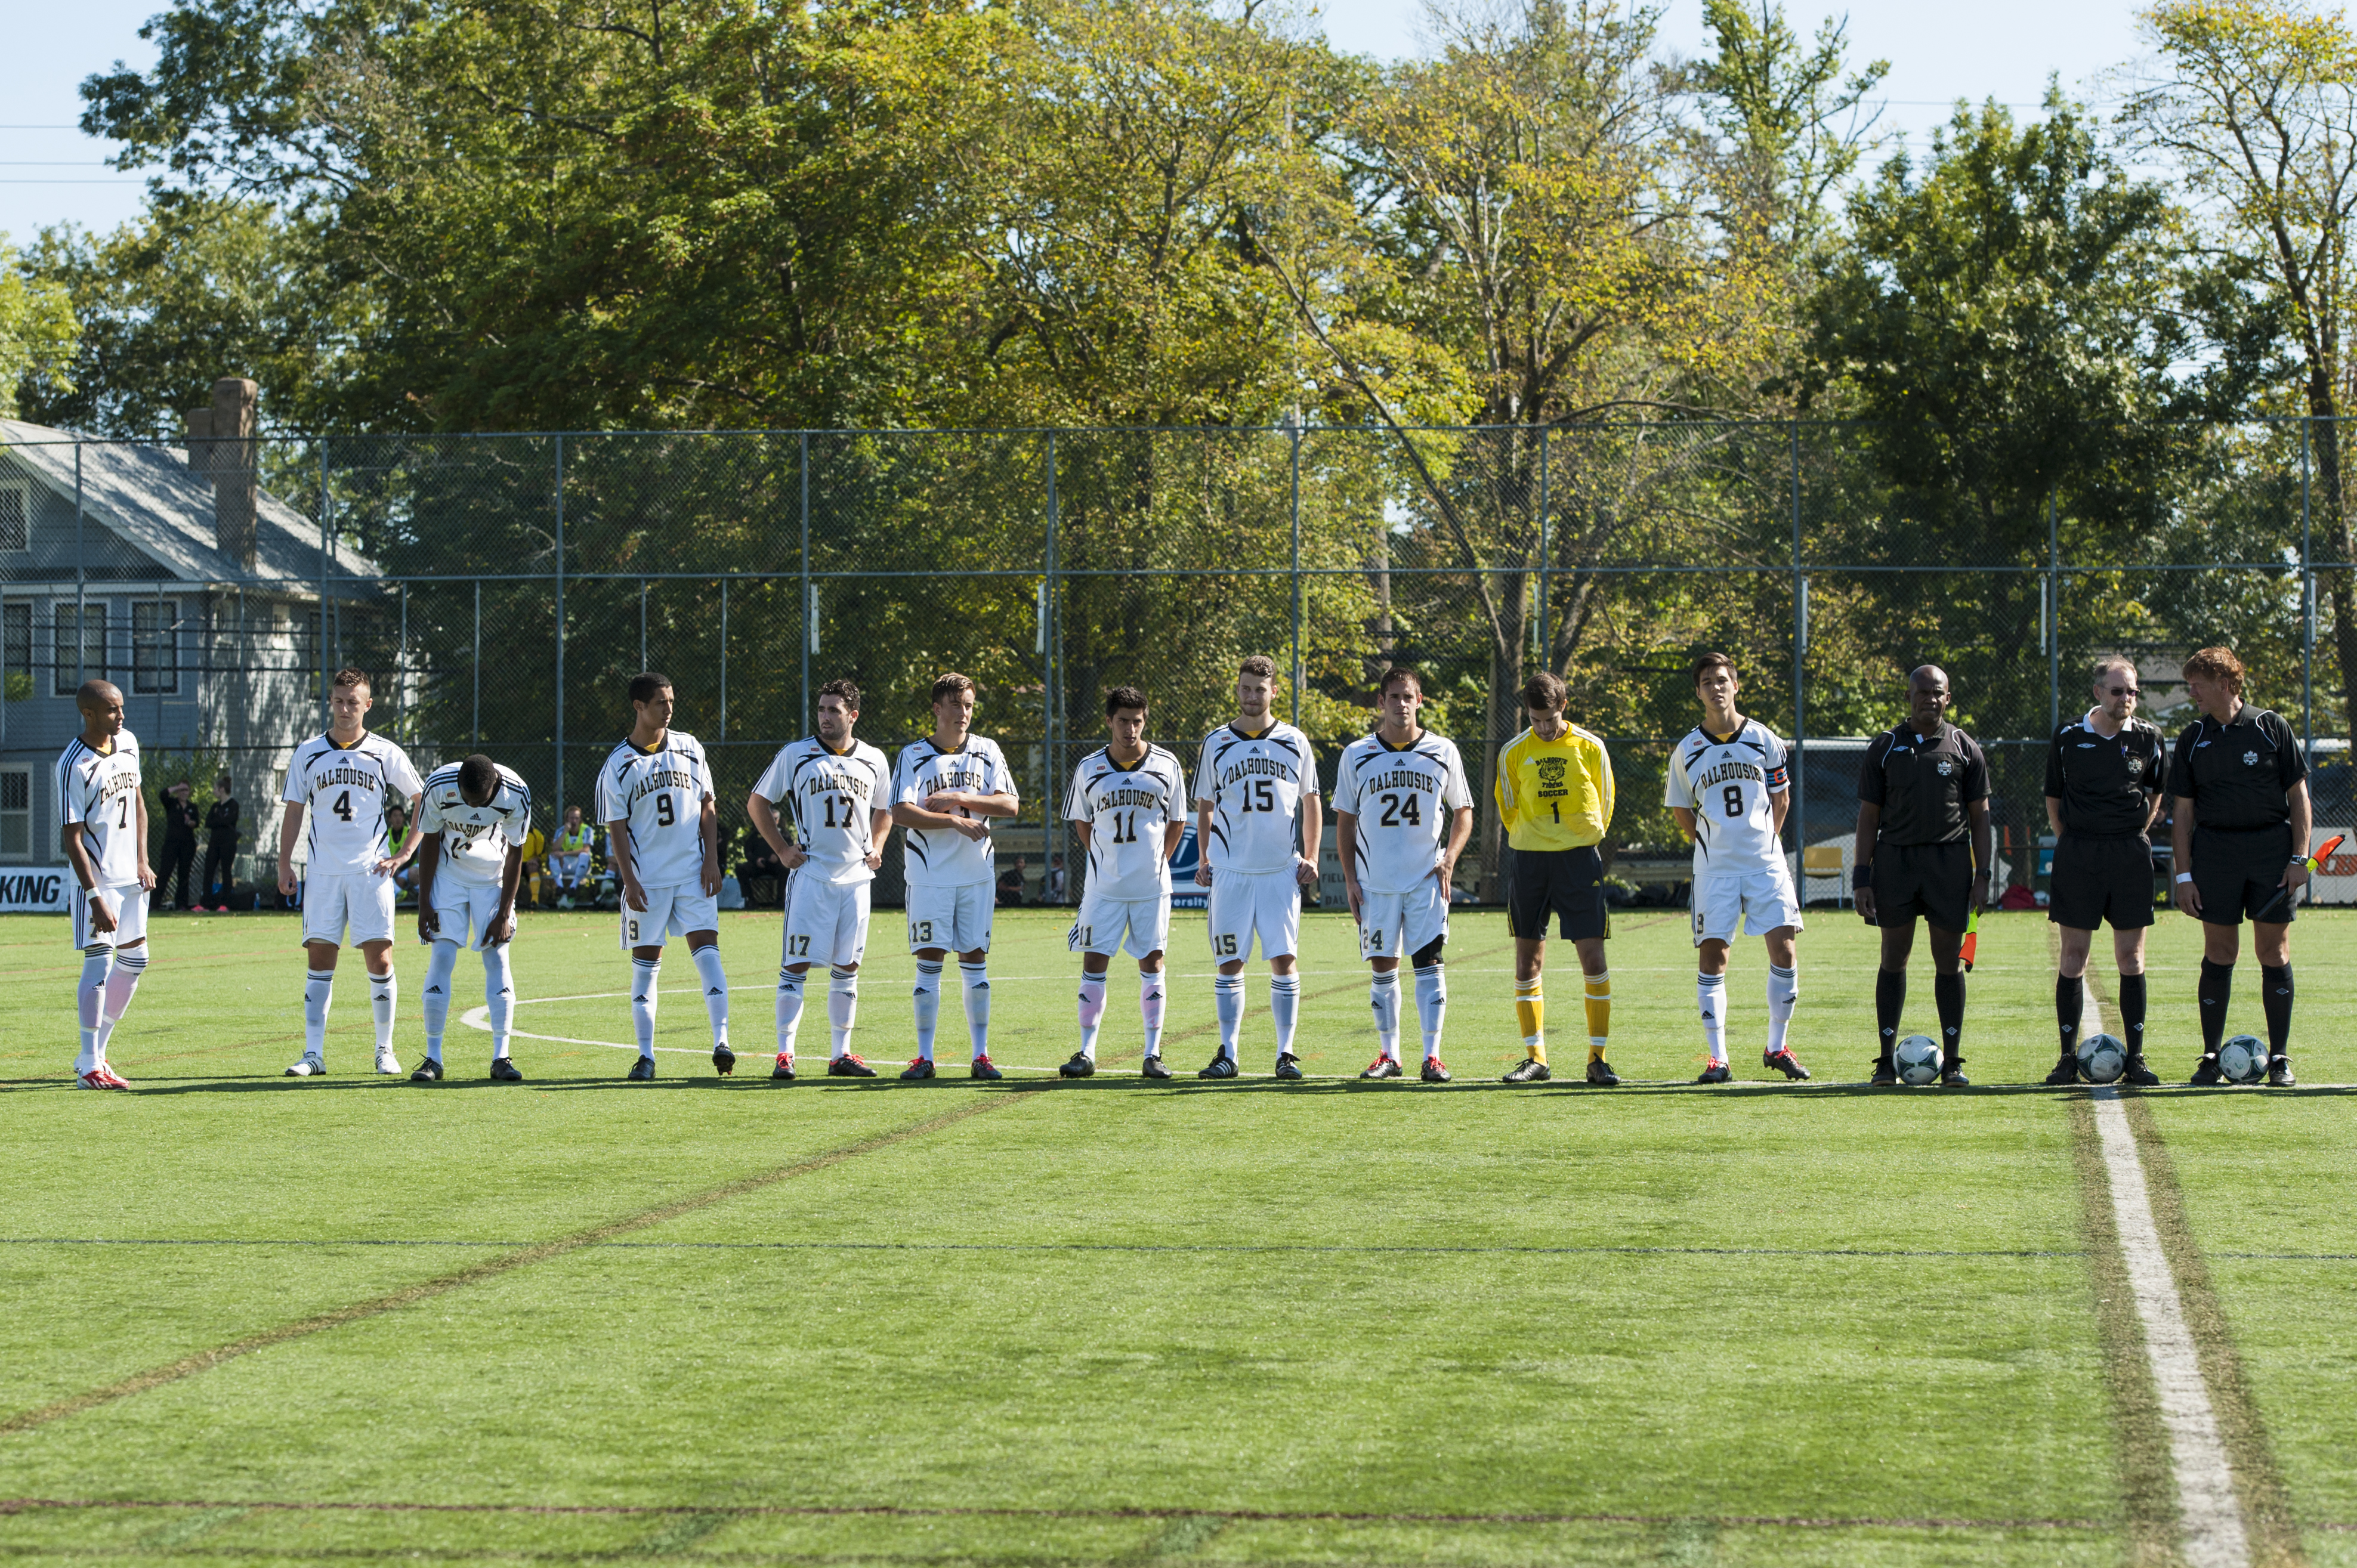 Men's soccer starting lineup at their home opener Sept. 7. (Chris Parent photo)